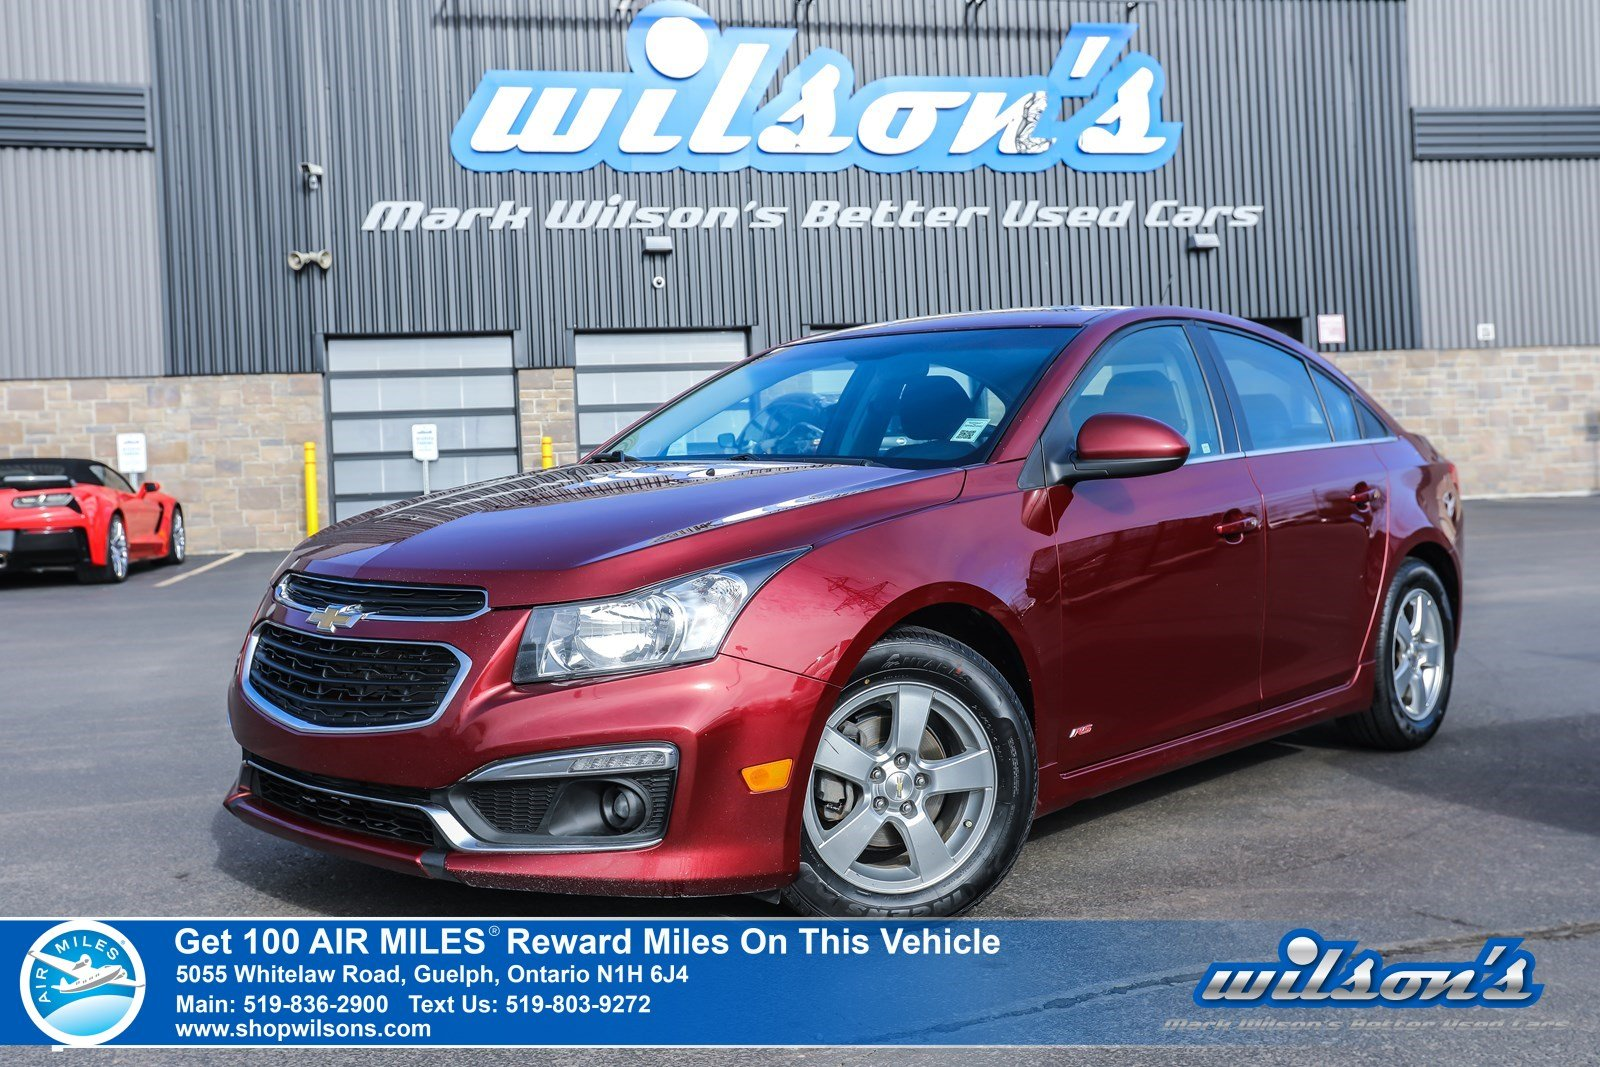 Certified Pre-Owned 2015 Chevrolet Cruze 1LTW/ RS Package Used - NEW TIRES! Sunroof, Rear Camera, Bluetooth, Pioneer Audio and more!